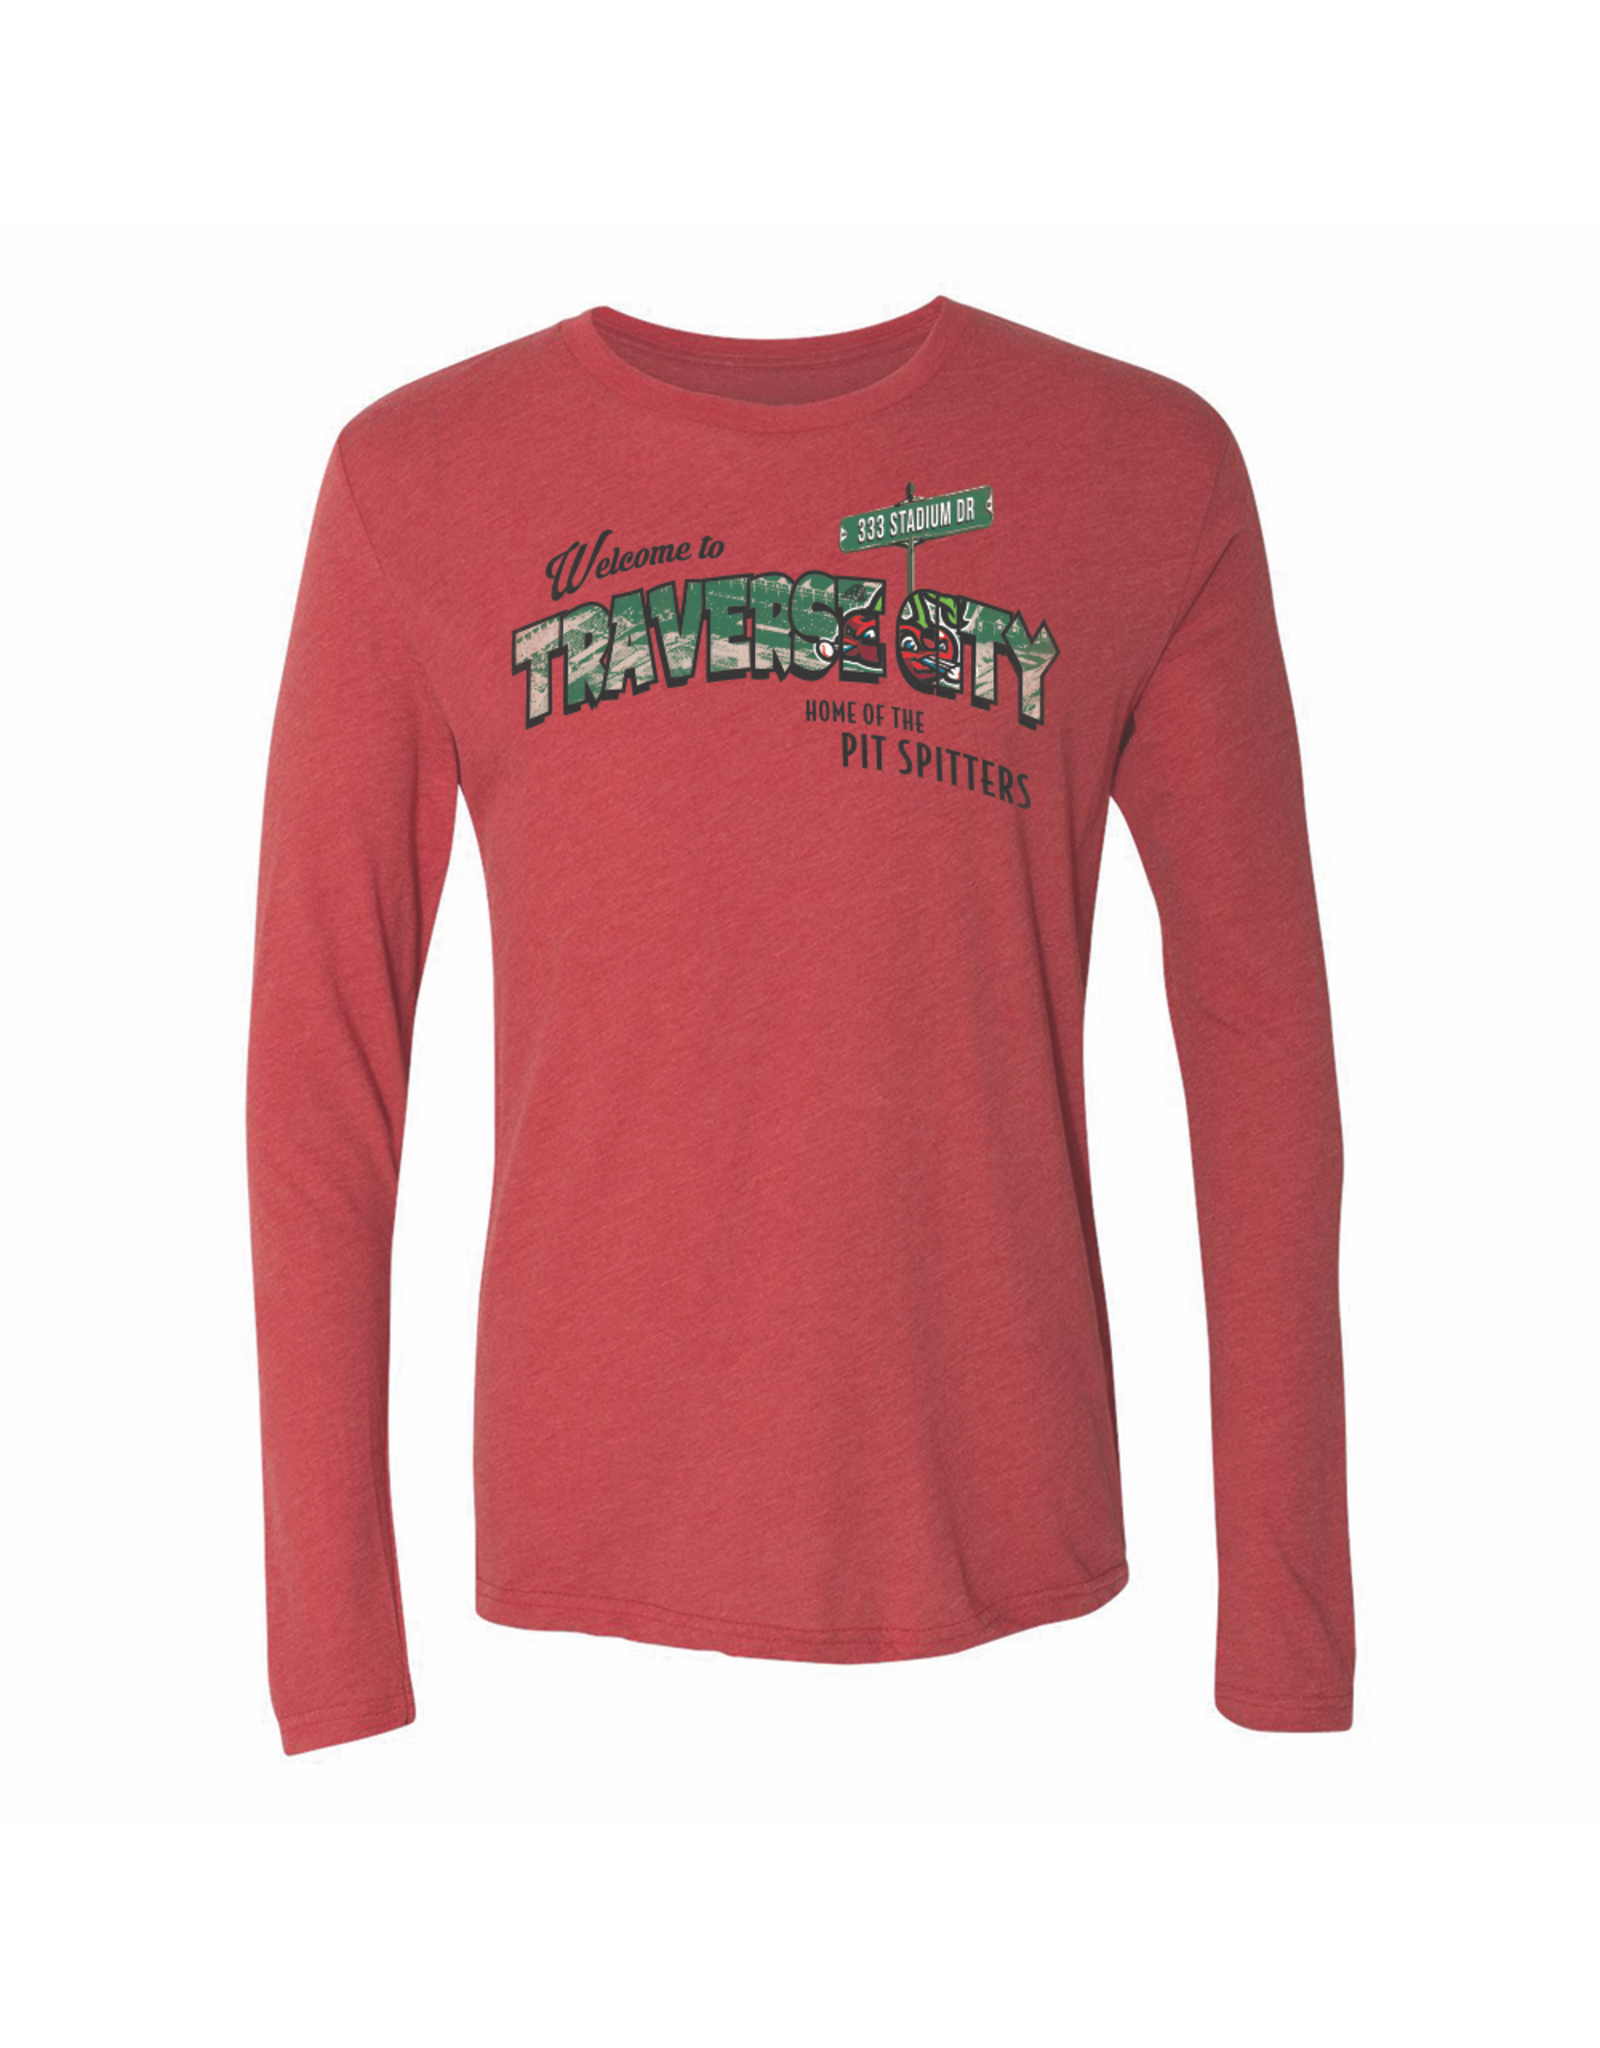 108 Stitches 2223 Triblend Postcard Red Long Sleeve Tee